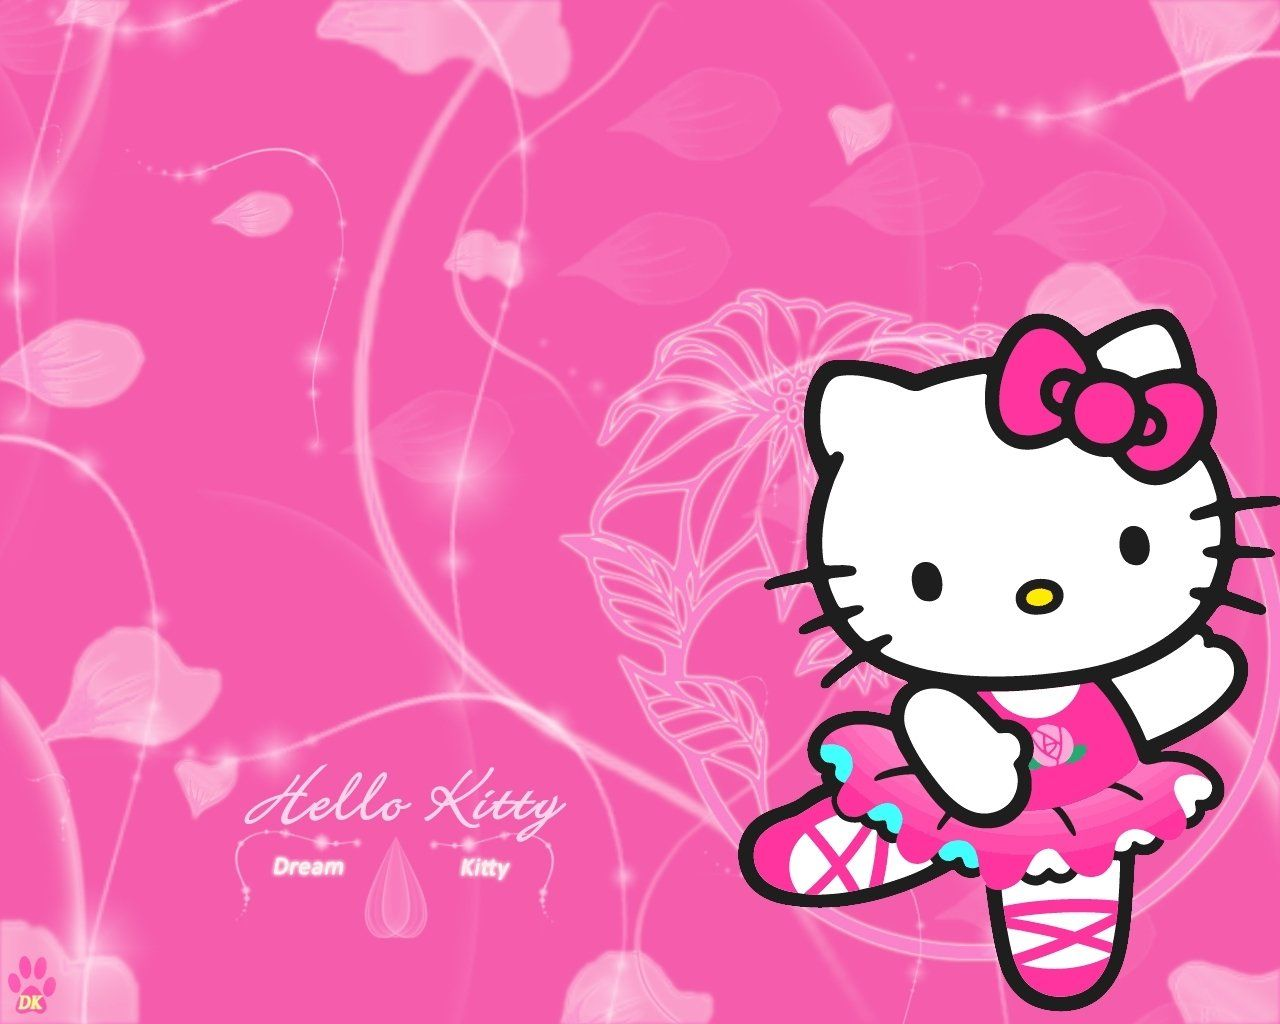 Download 580 Koleksi Background Hello Kitty Pink HD Paling Keren